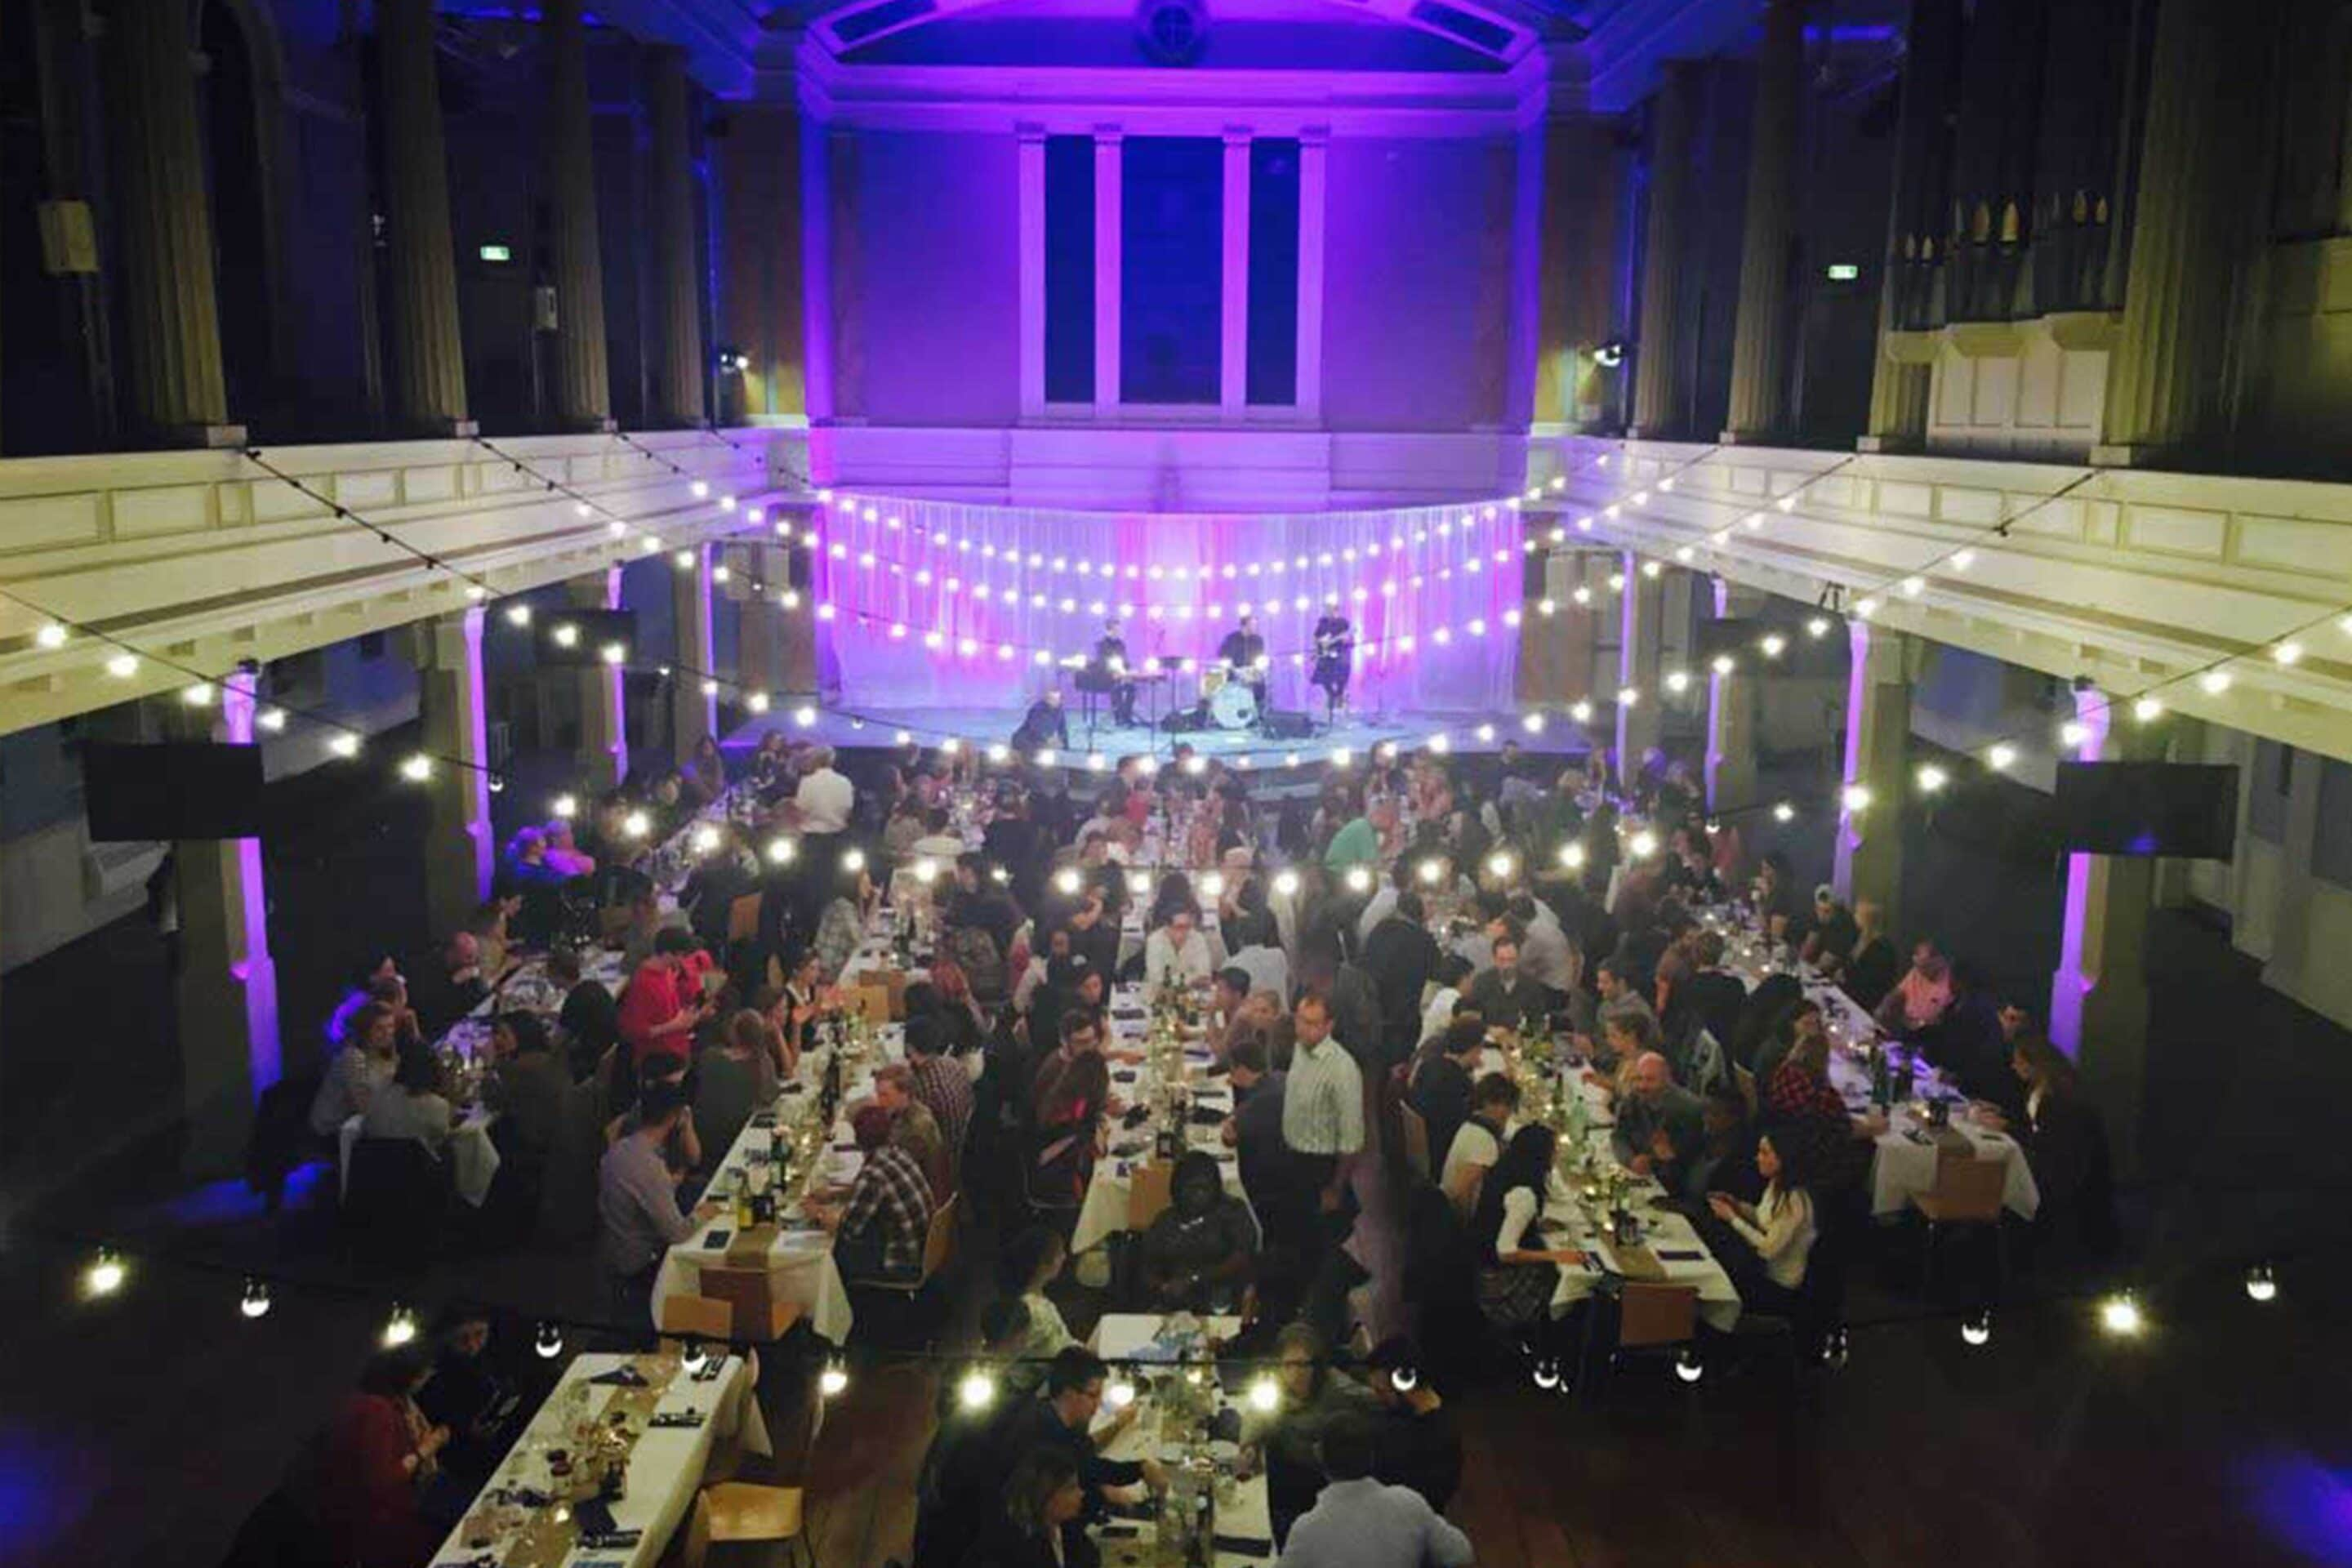 Banquet style dining with festoons and atmospheric lighting at St Mary's London Venue Hire